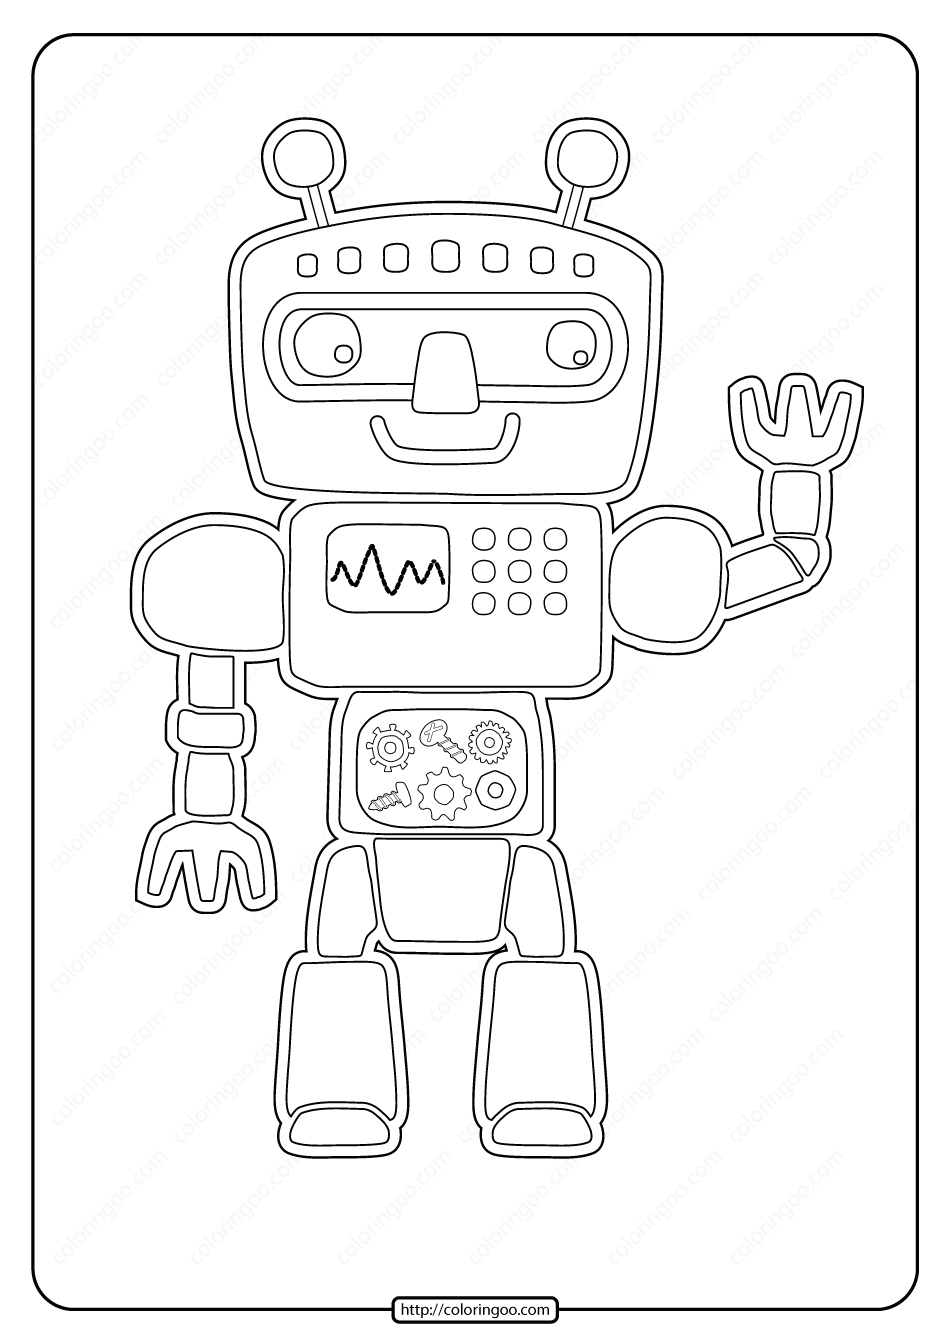 ready to robot coloring pages robots colouring pages 18 print off pages pages coloring robot ready to